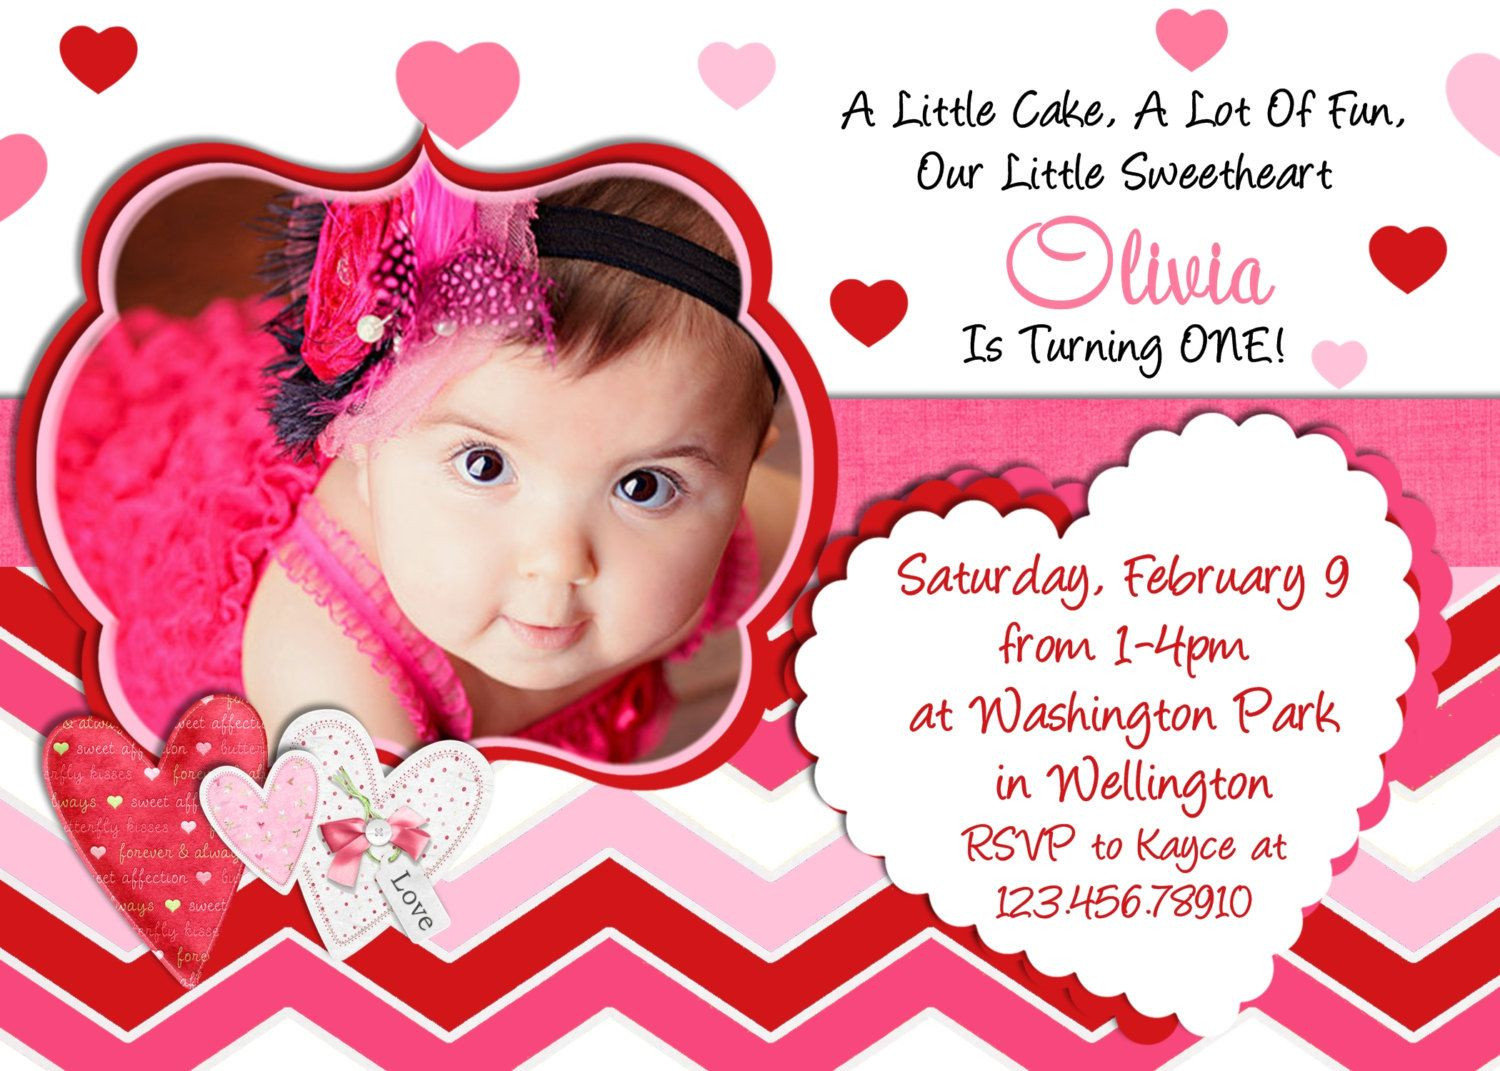 Best ideas about Design Birthday Invitations . Save or Pin Invitation Birthday Cards Designs Now.